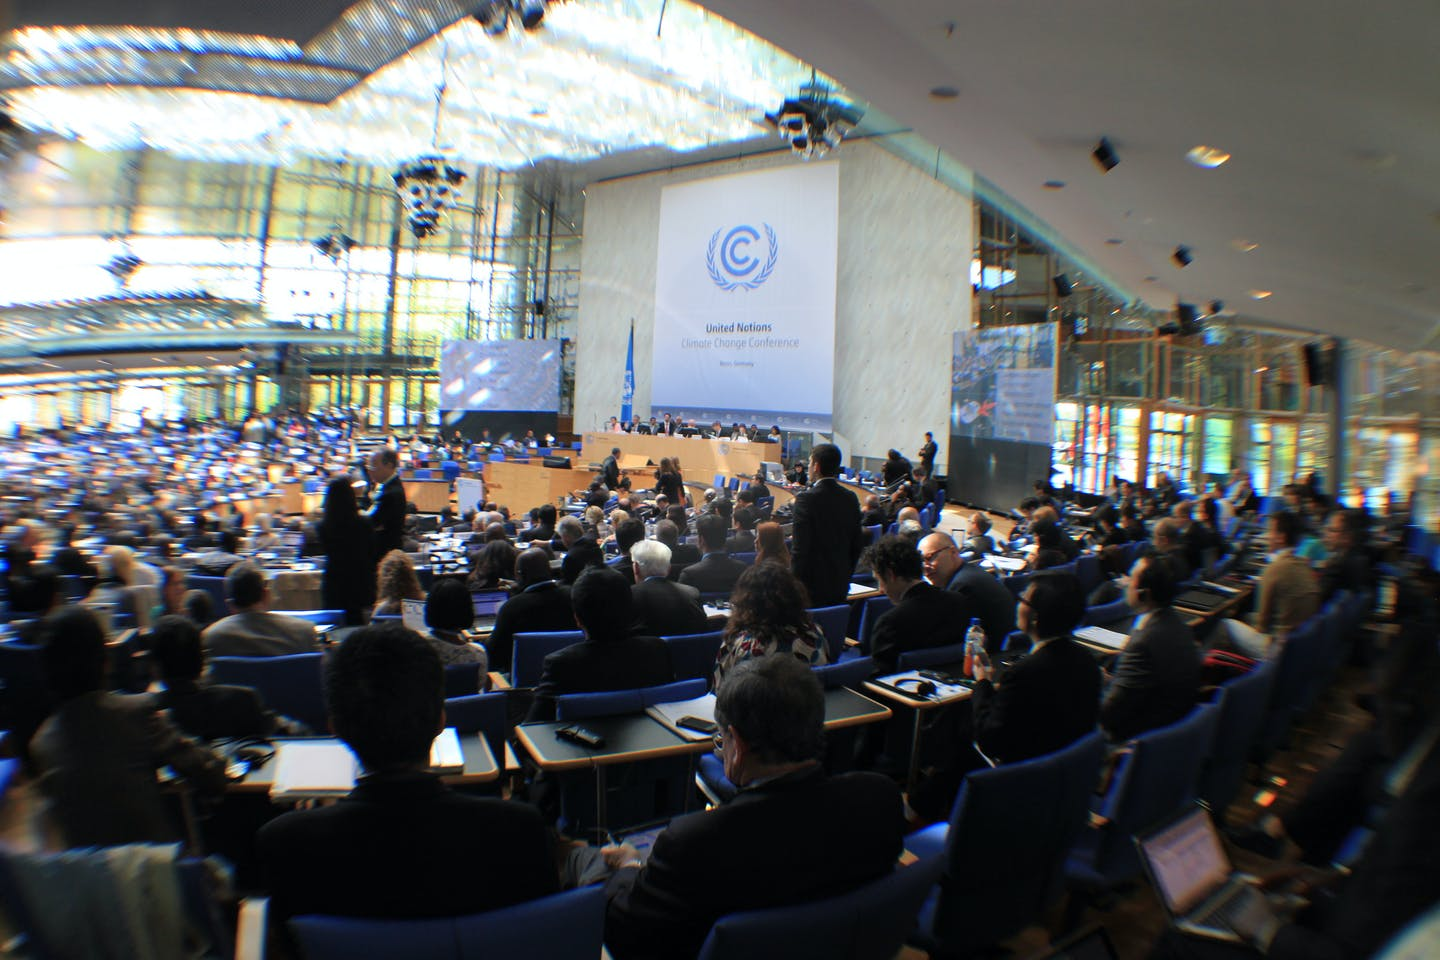 Bonn Climate Change Conference in April 2013